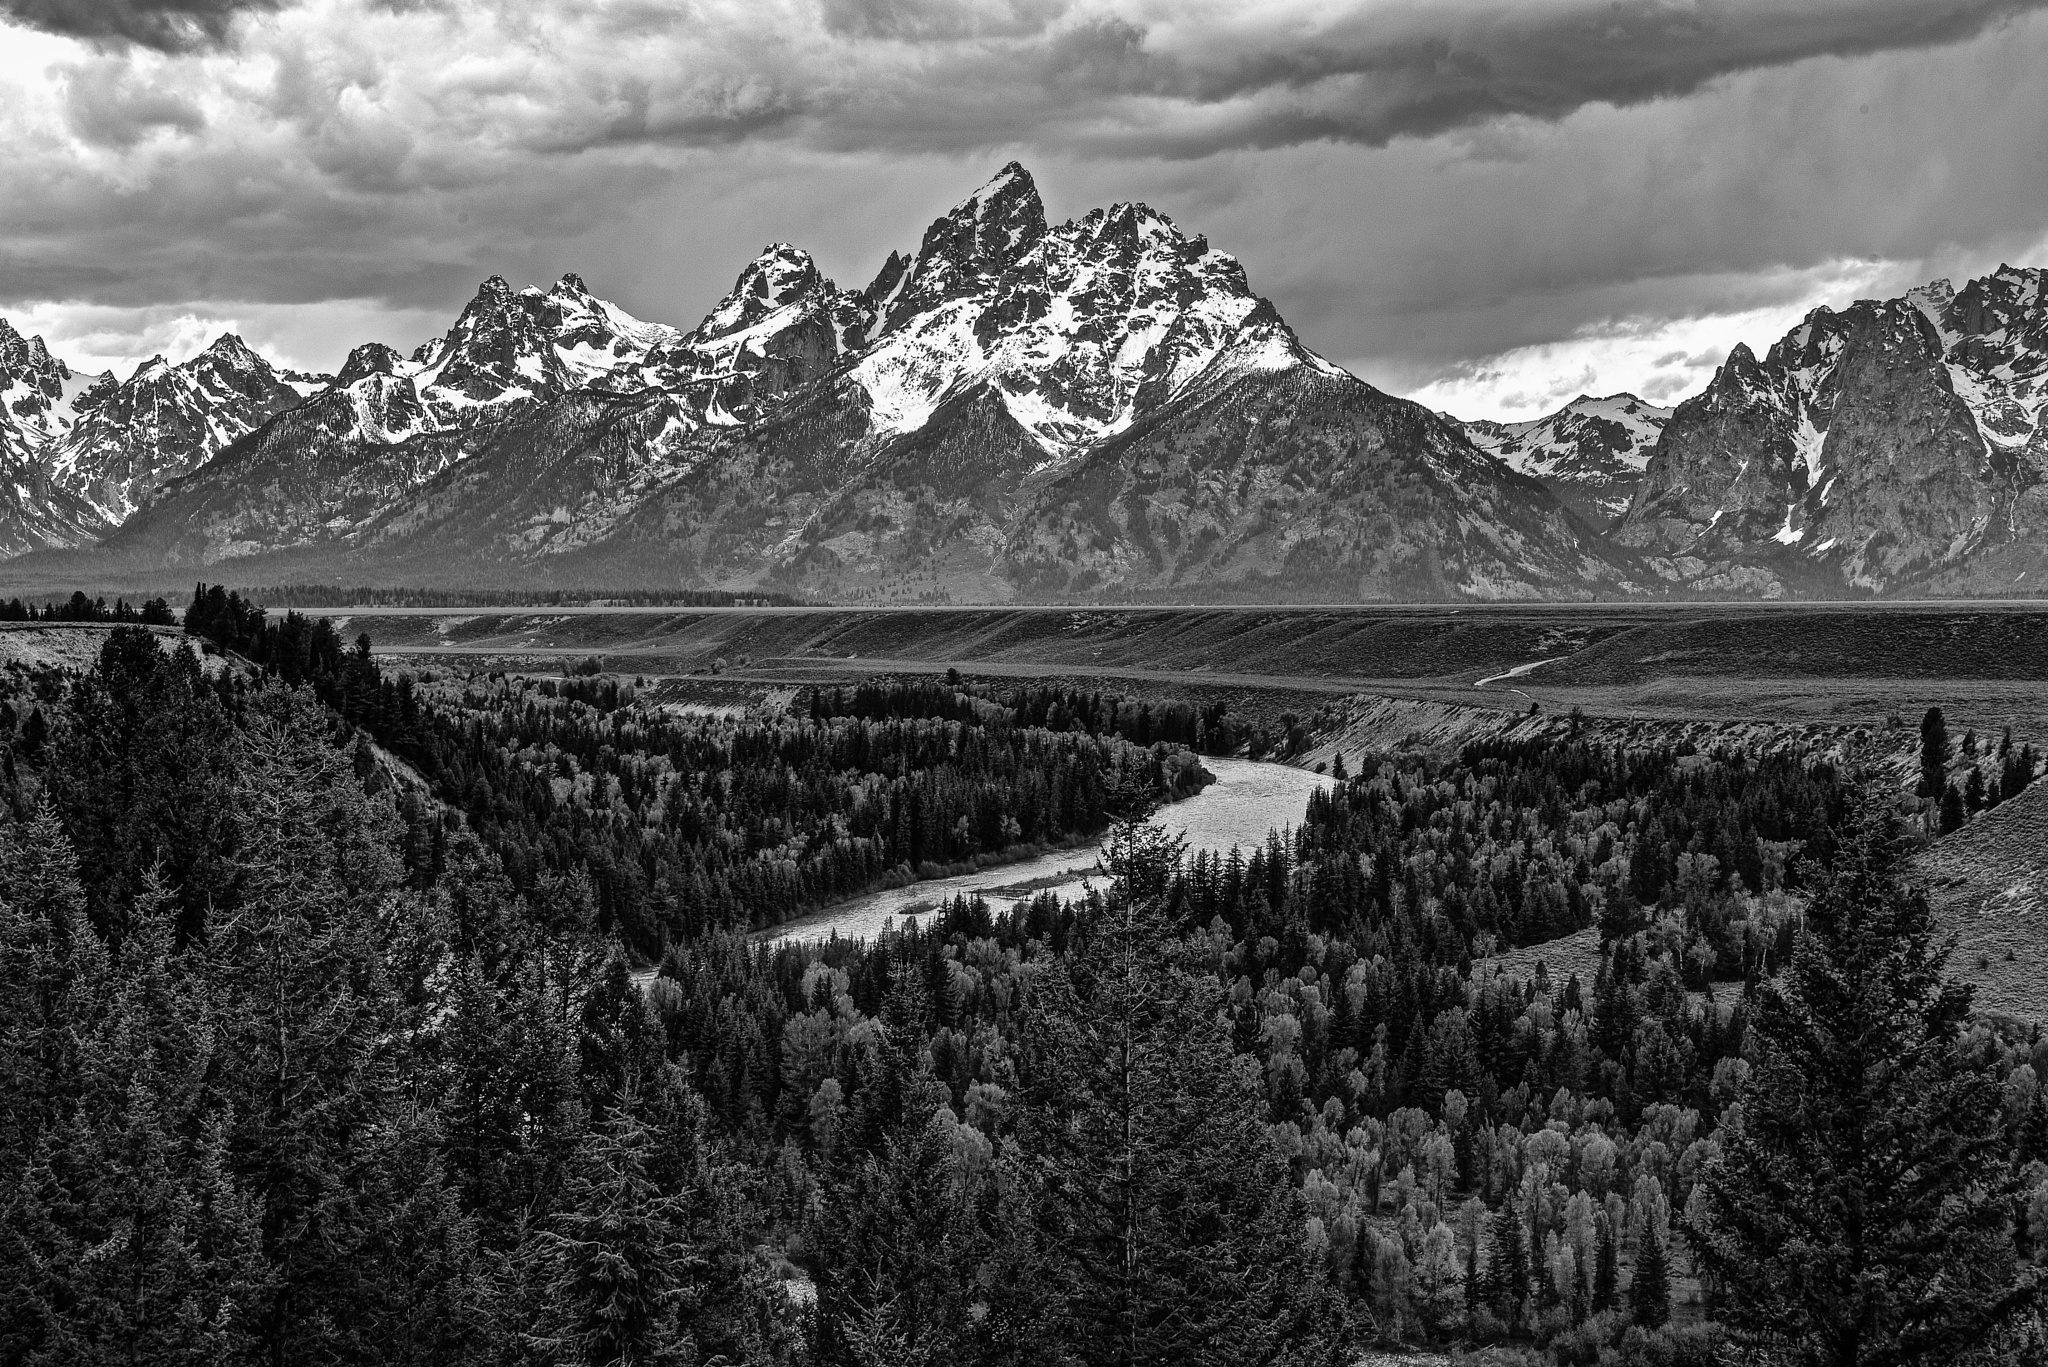 Grand Teton View With Valley by Steve Aicinena